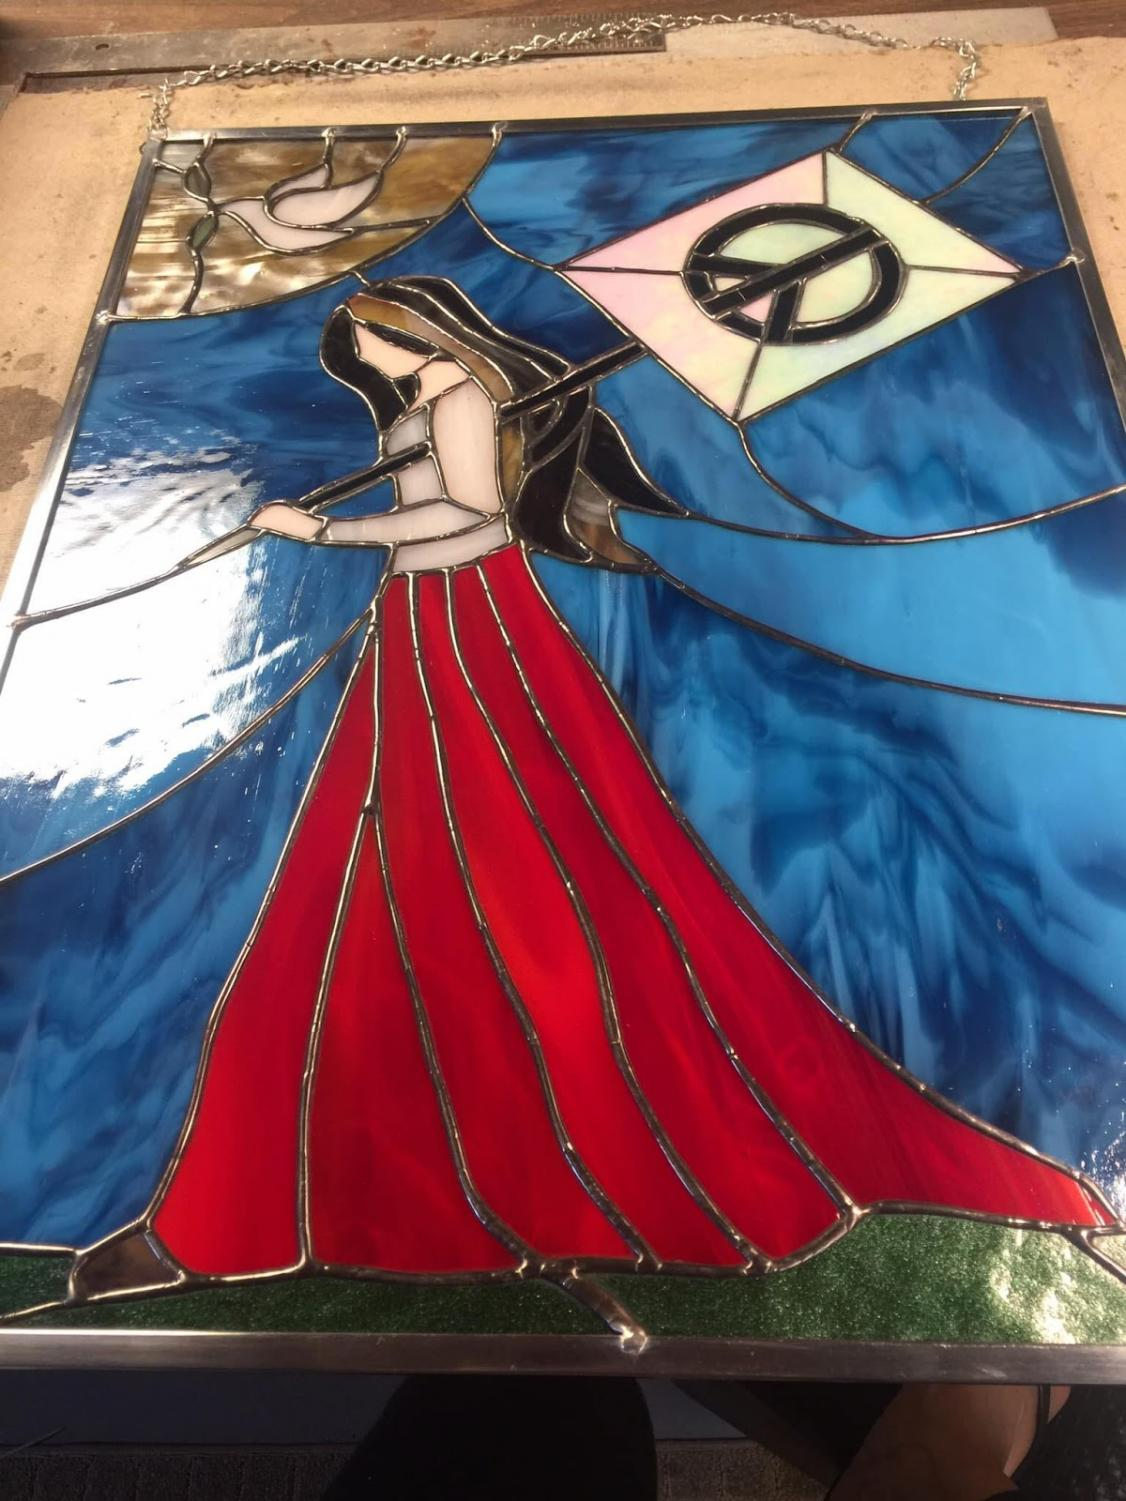 Some of Dr. Zaremba's stained glass work. Photos courtesy of Stacey Zaremba.